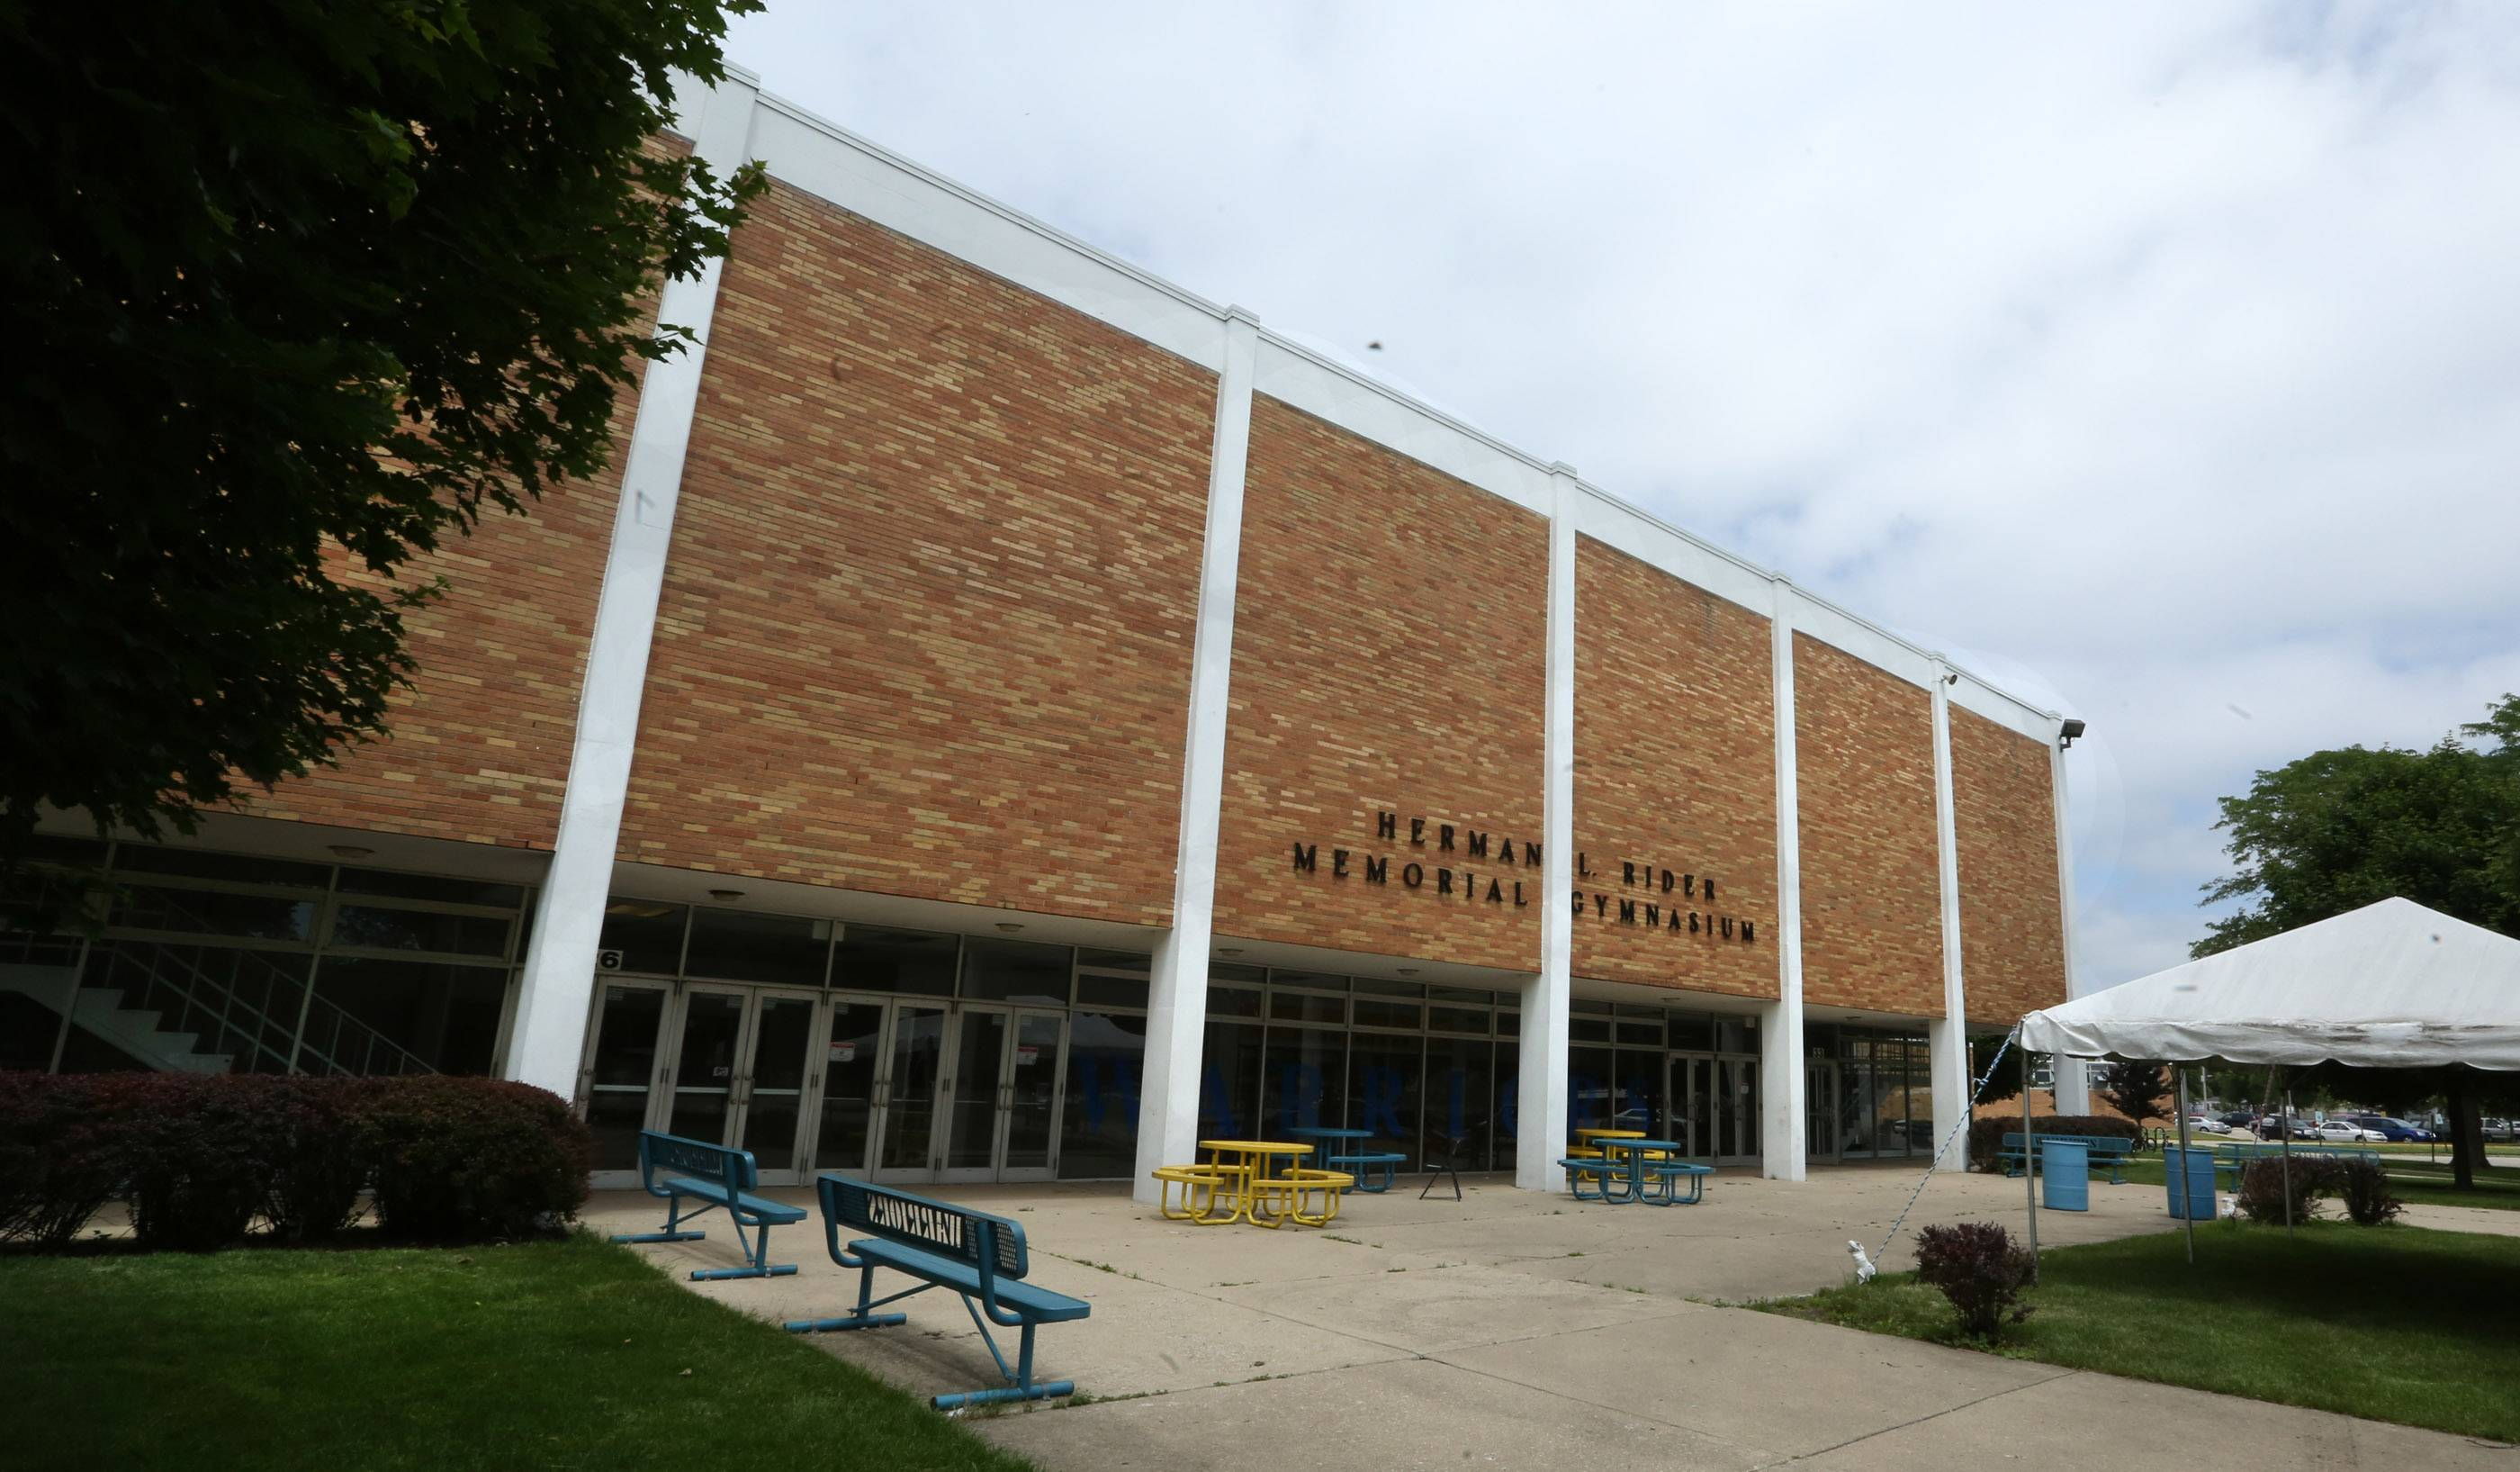 Maine West High School's gymnasium is due to receive a $10 million addition that includes a new wrestling room, dance studio and fitness center, and refurbished locker rooms and athletic offices.